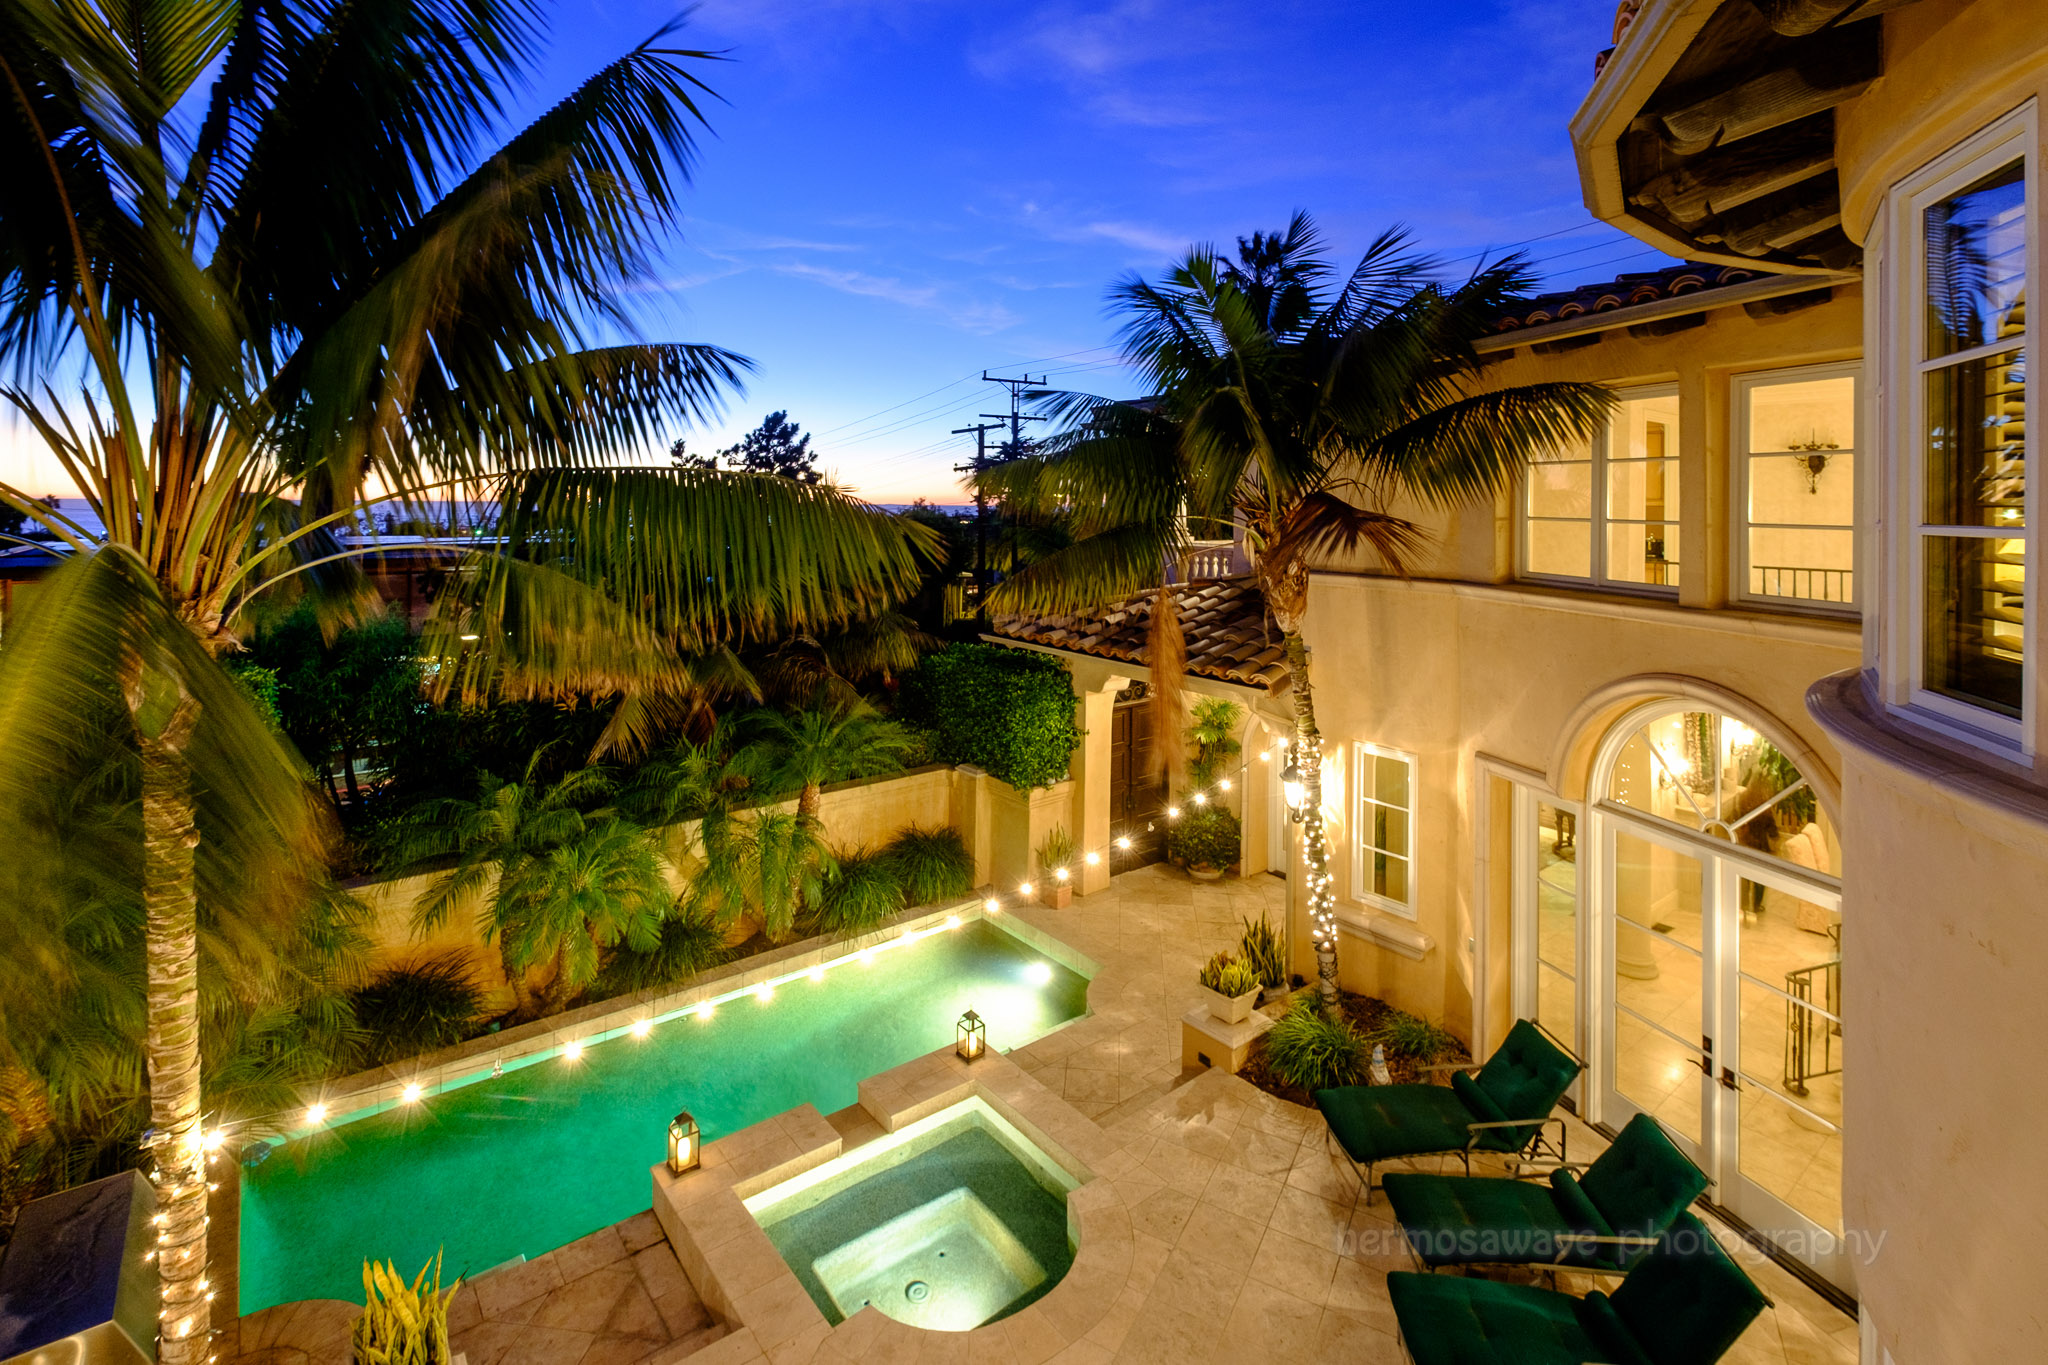 Mediterranean Courtyard, Manhattan Beach, California